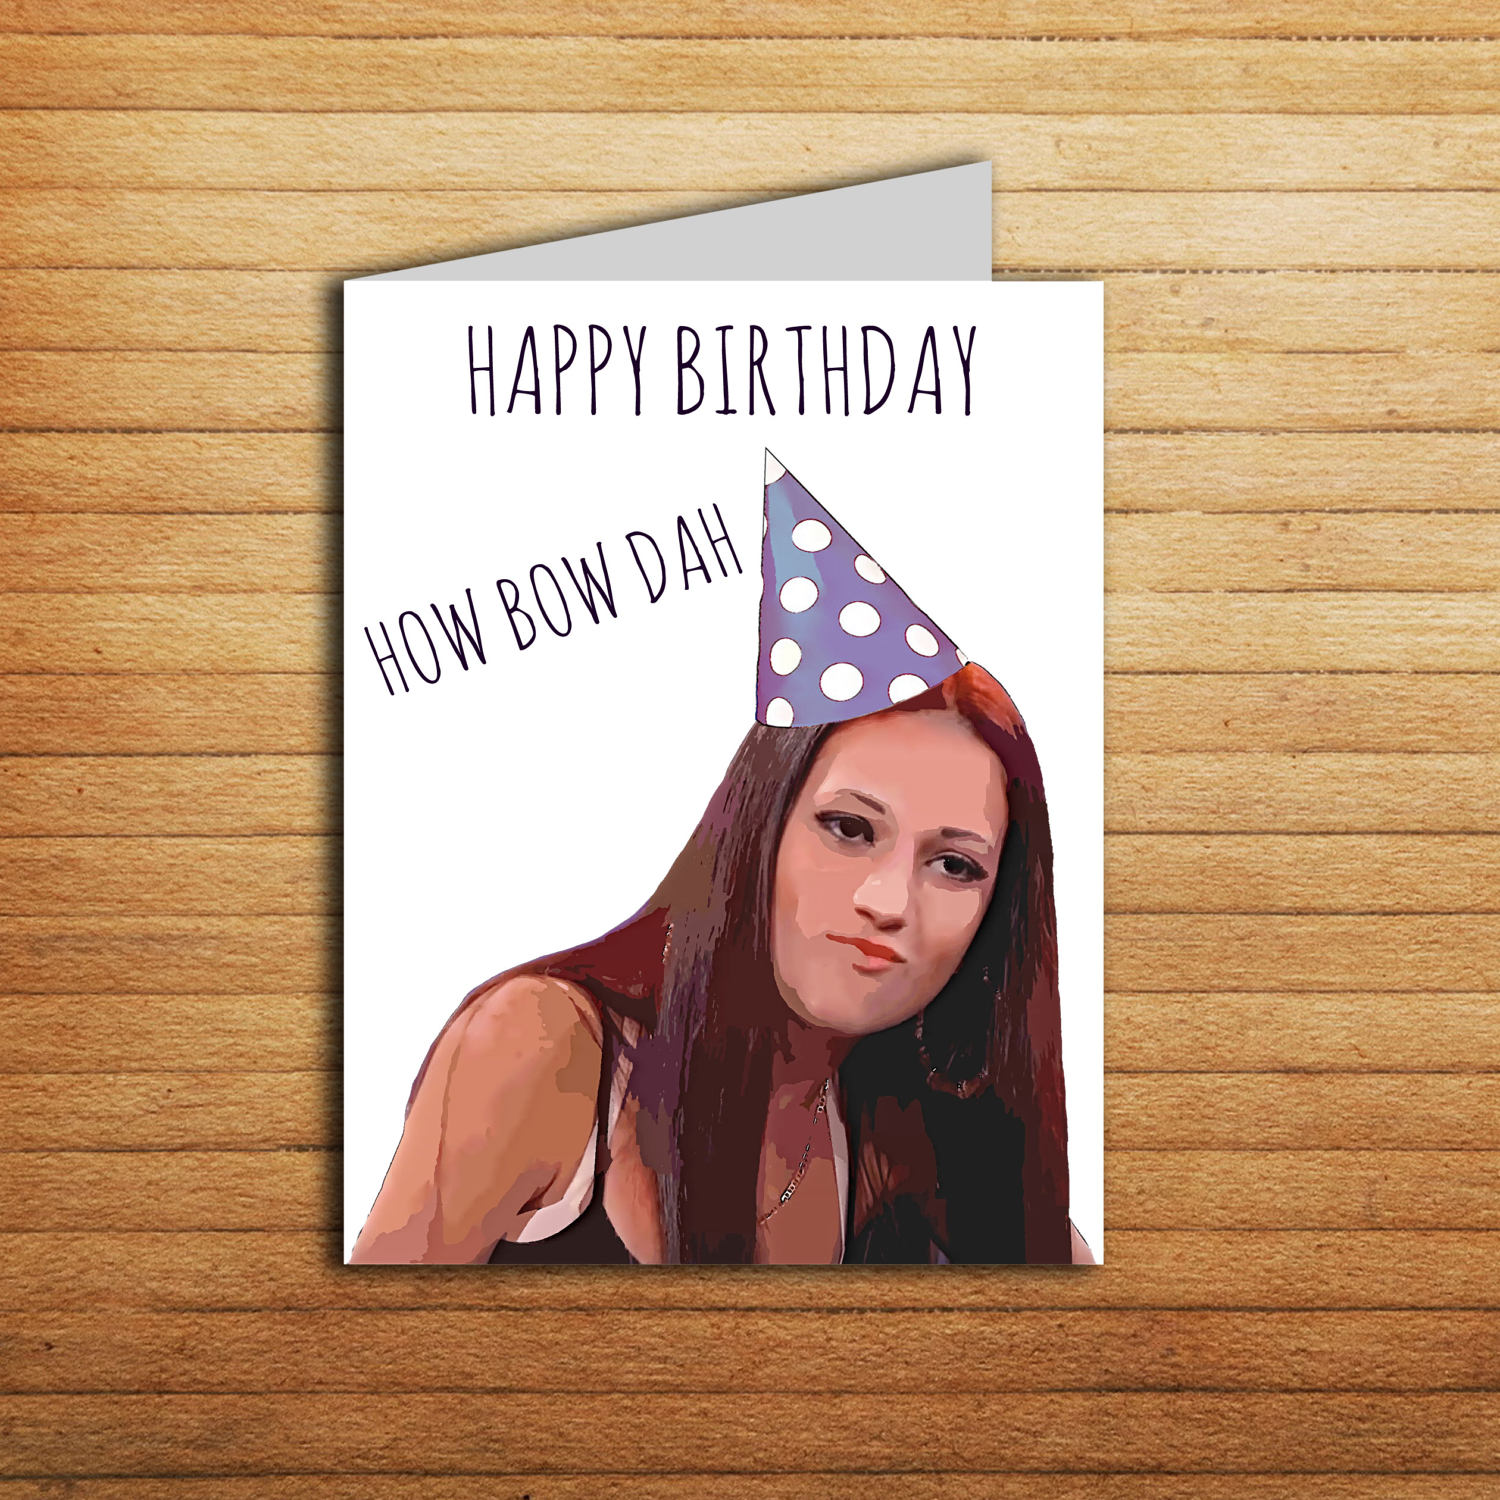 Cash me outside how bow dah birthday card printable funny gift happy birthday card dank meme dr phil tv shows rude sassy cash me ousside